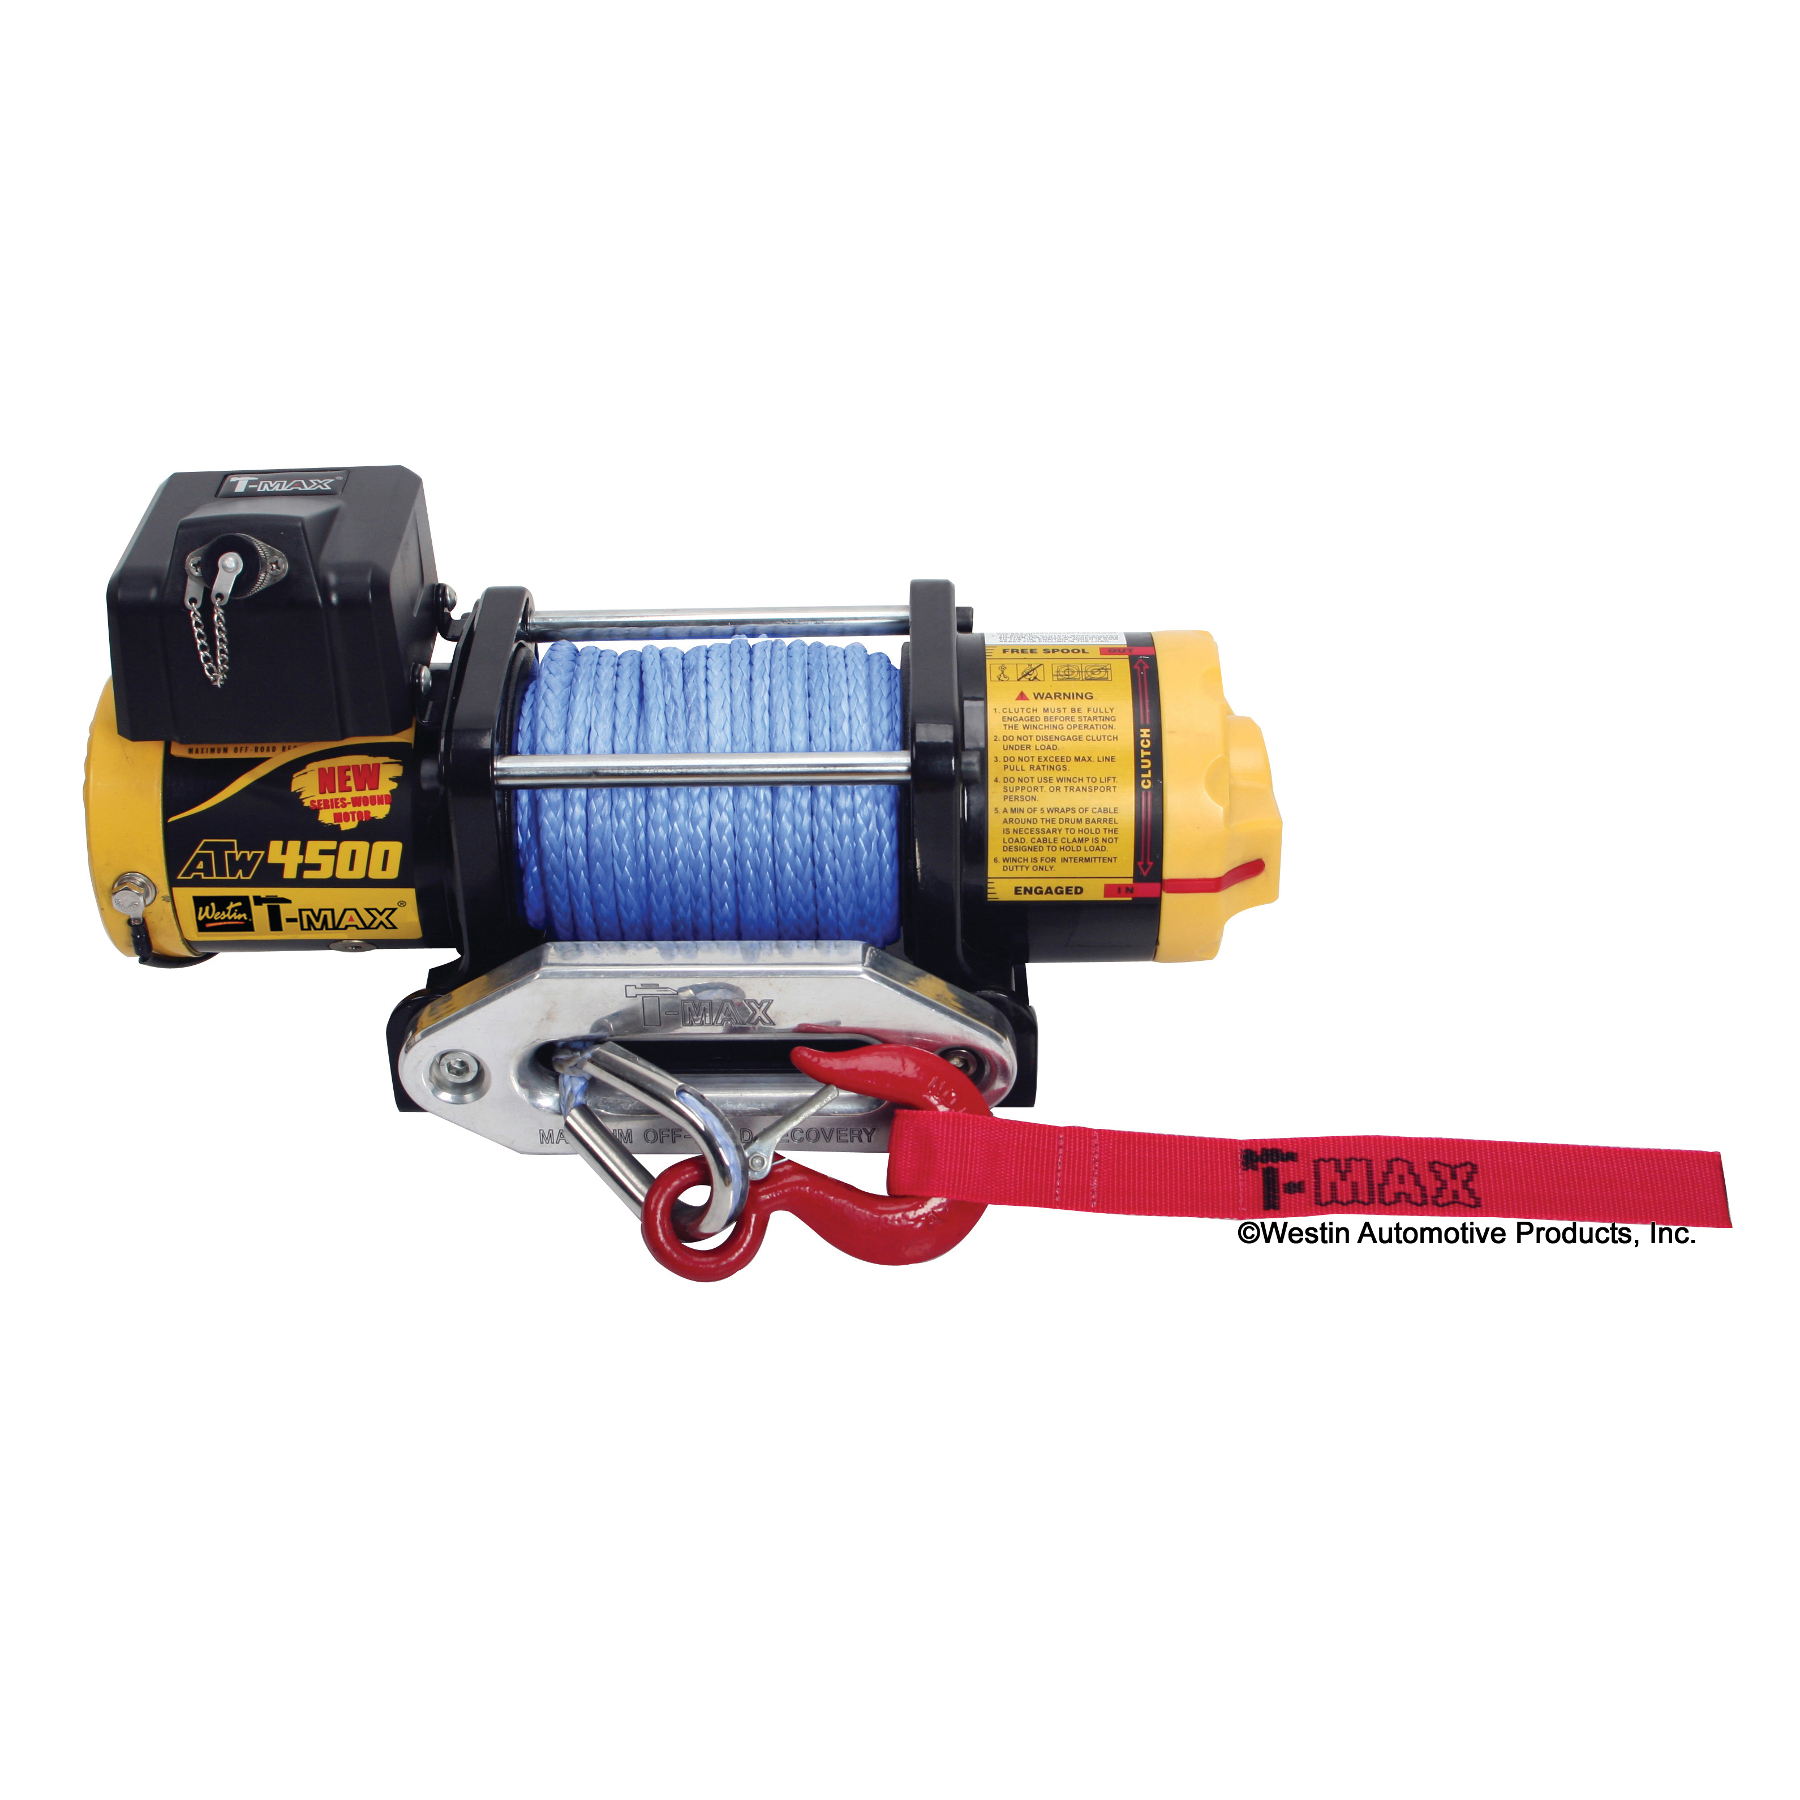 TMax ATW PRO4500S Winch Synthetic Rope  Automotive